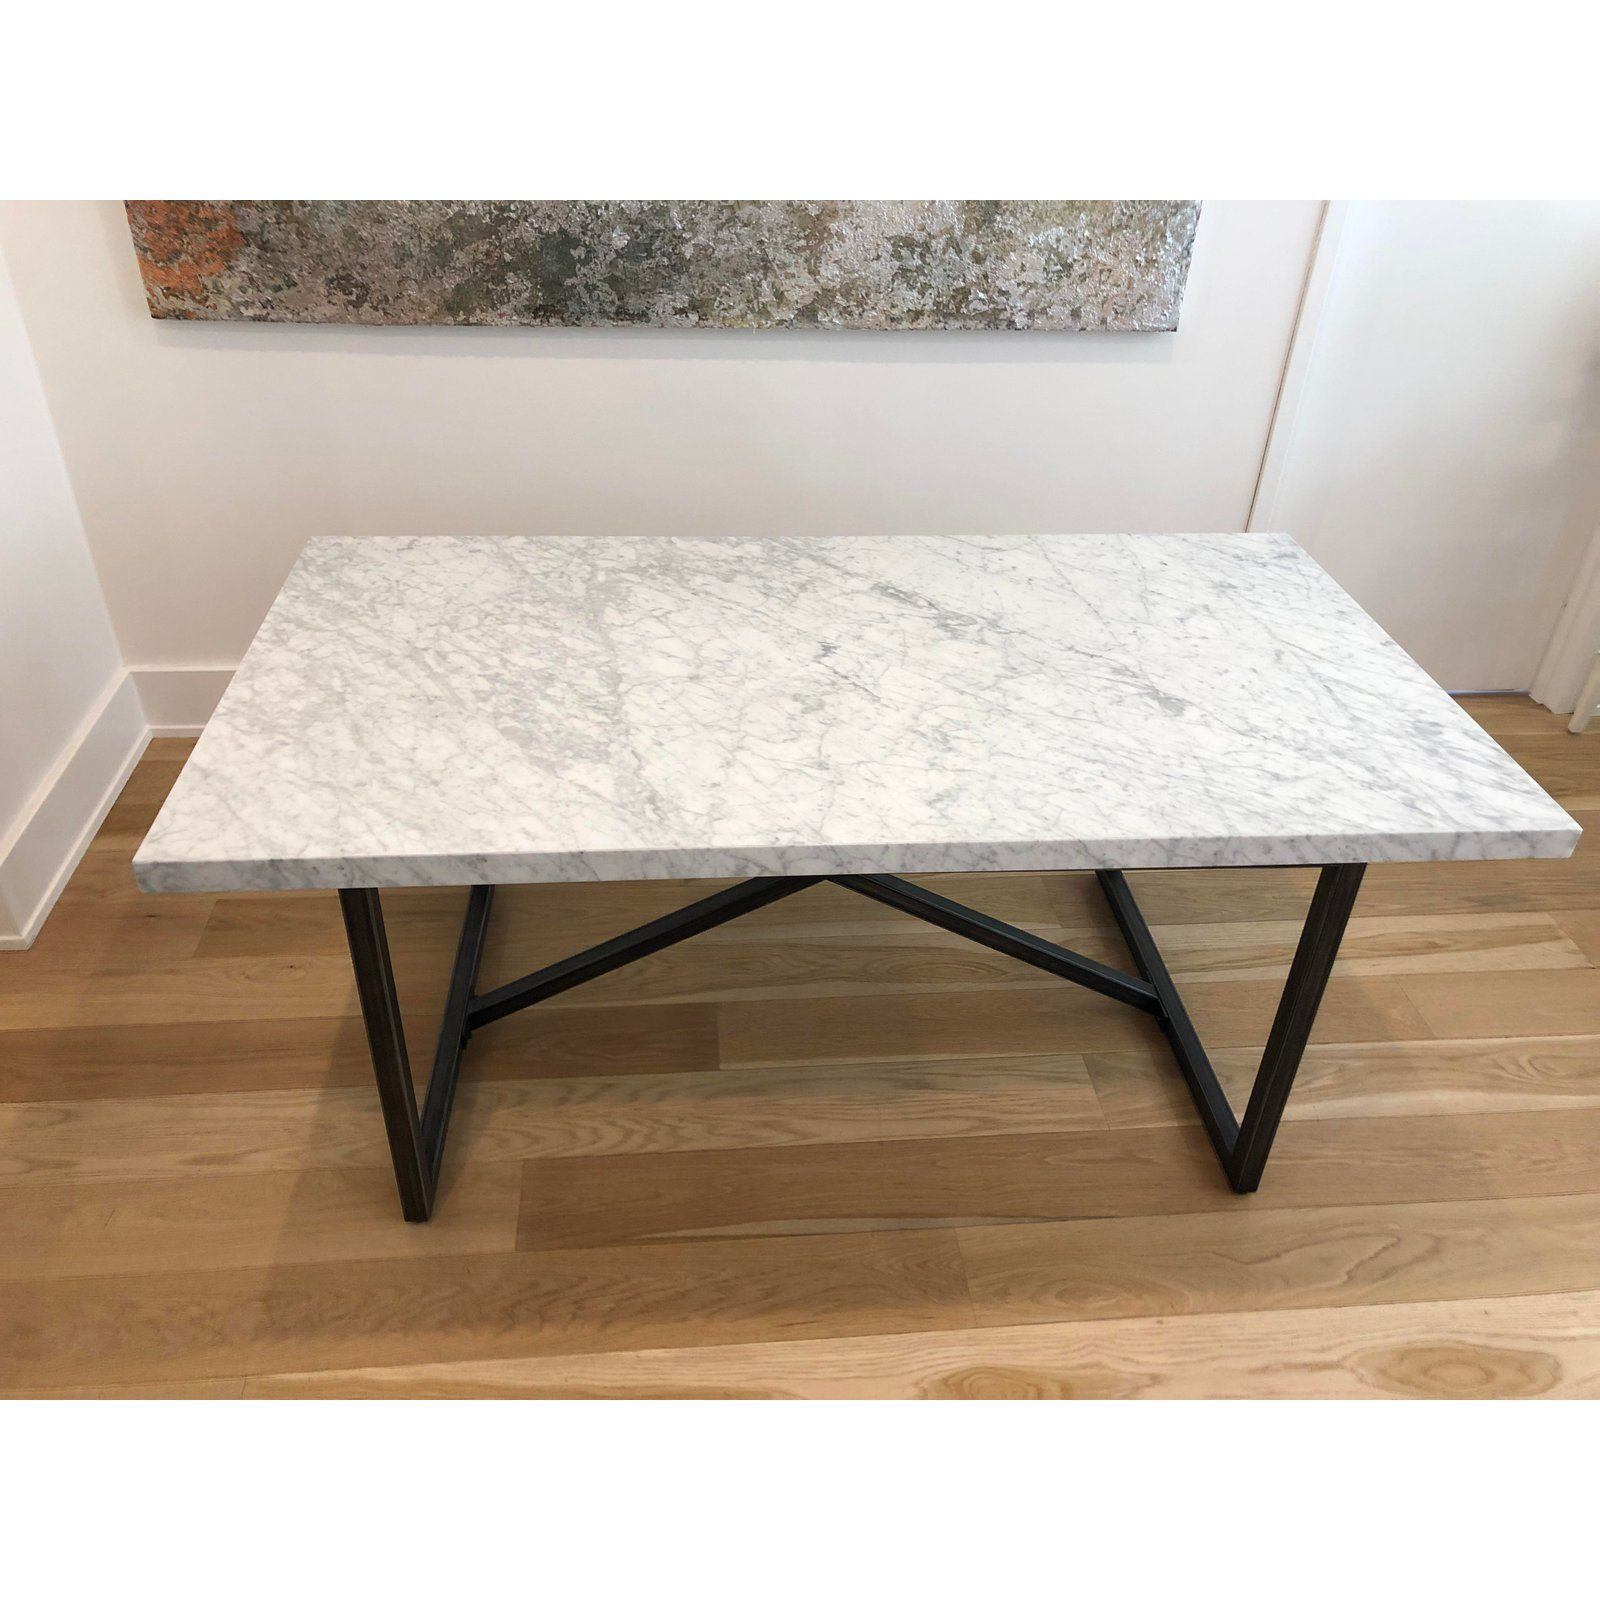 Italian Italian Restoration Hardware Marble Dining Table For Sale Image 3 Of 3 Dining Table Marble Dining Table Marble Dining